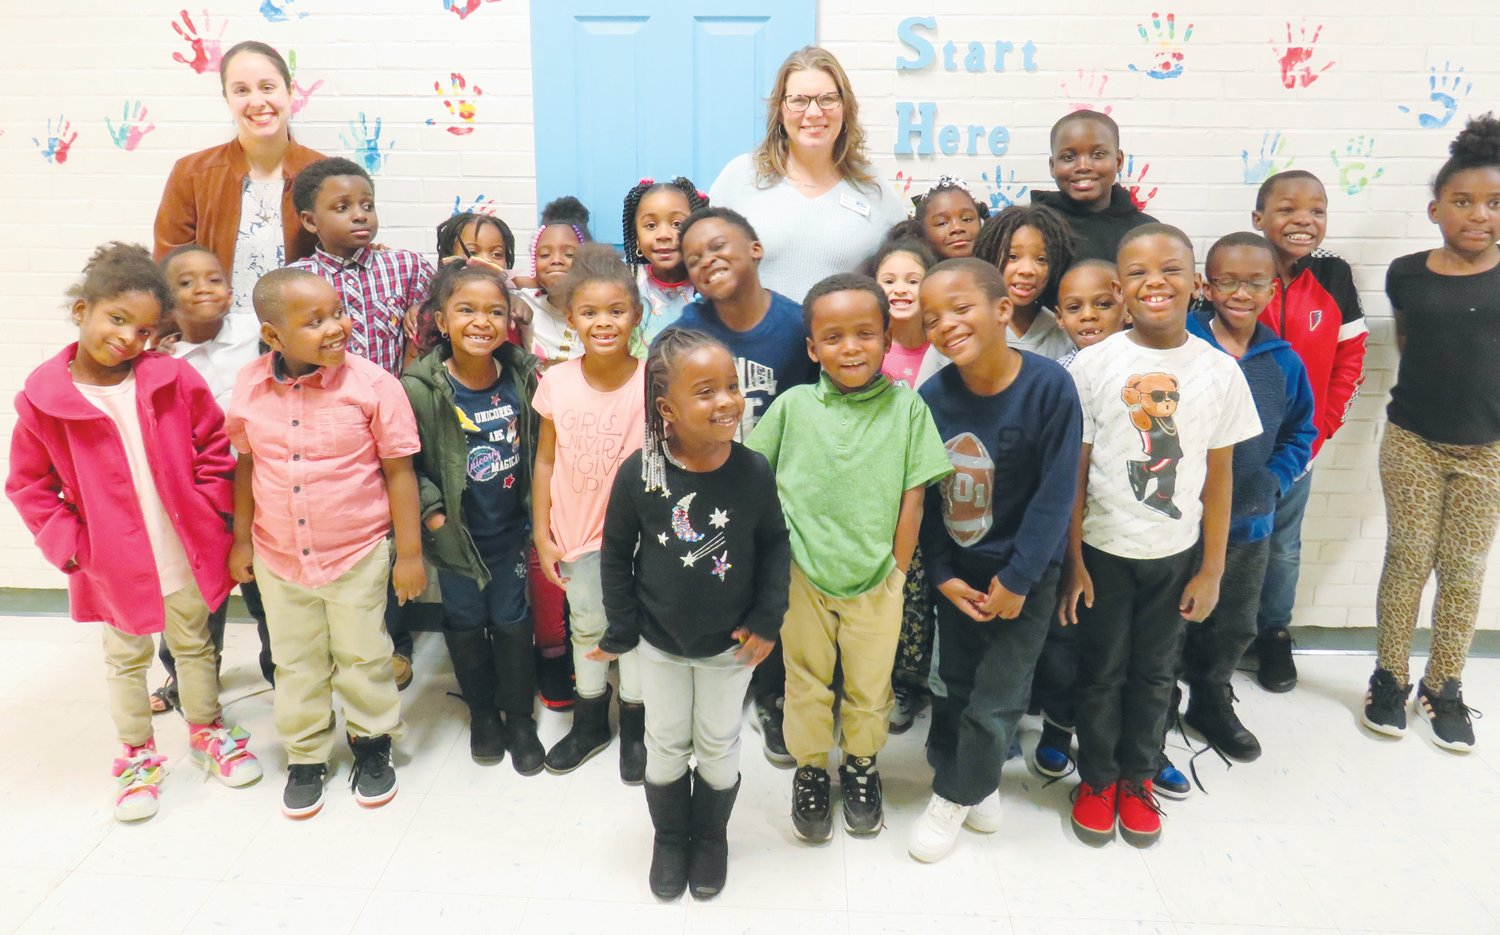 Boys and Girls Club of Wayne County received three grants to help support their Smart Moves, Triple Pay and Aim for Success programming. These programs help kids learn to make smart choices, engage in a healthy life style and achieve academic success, according to United Way of Wayne County.